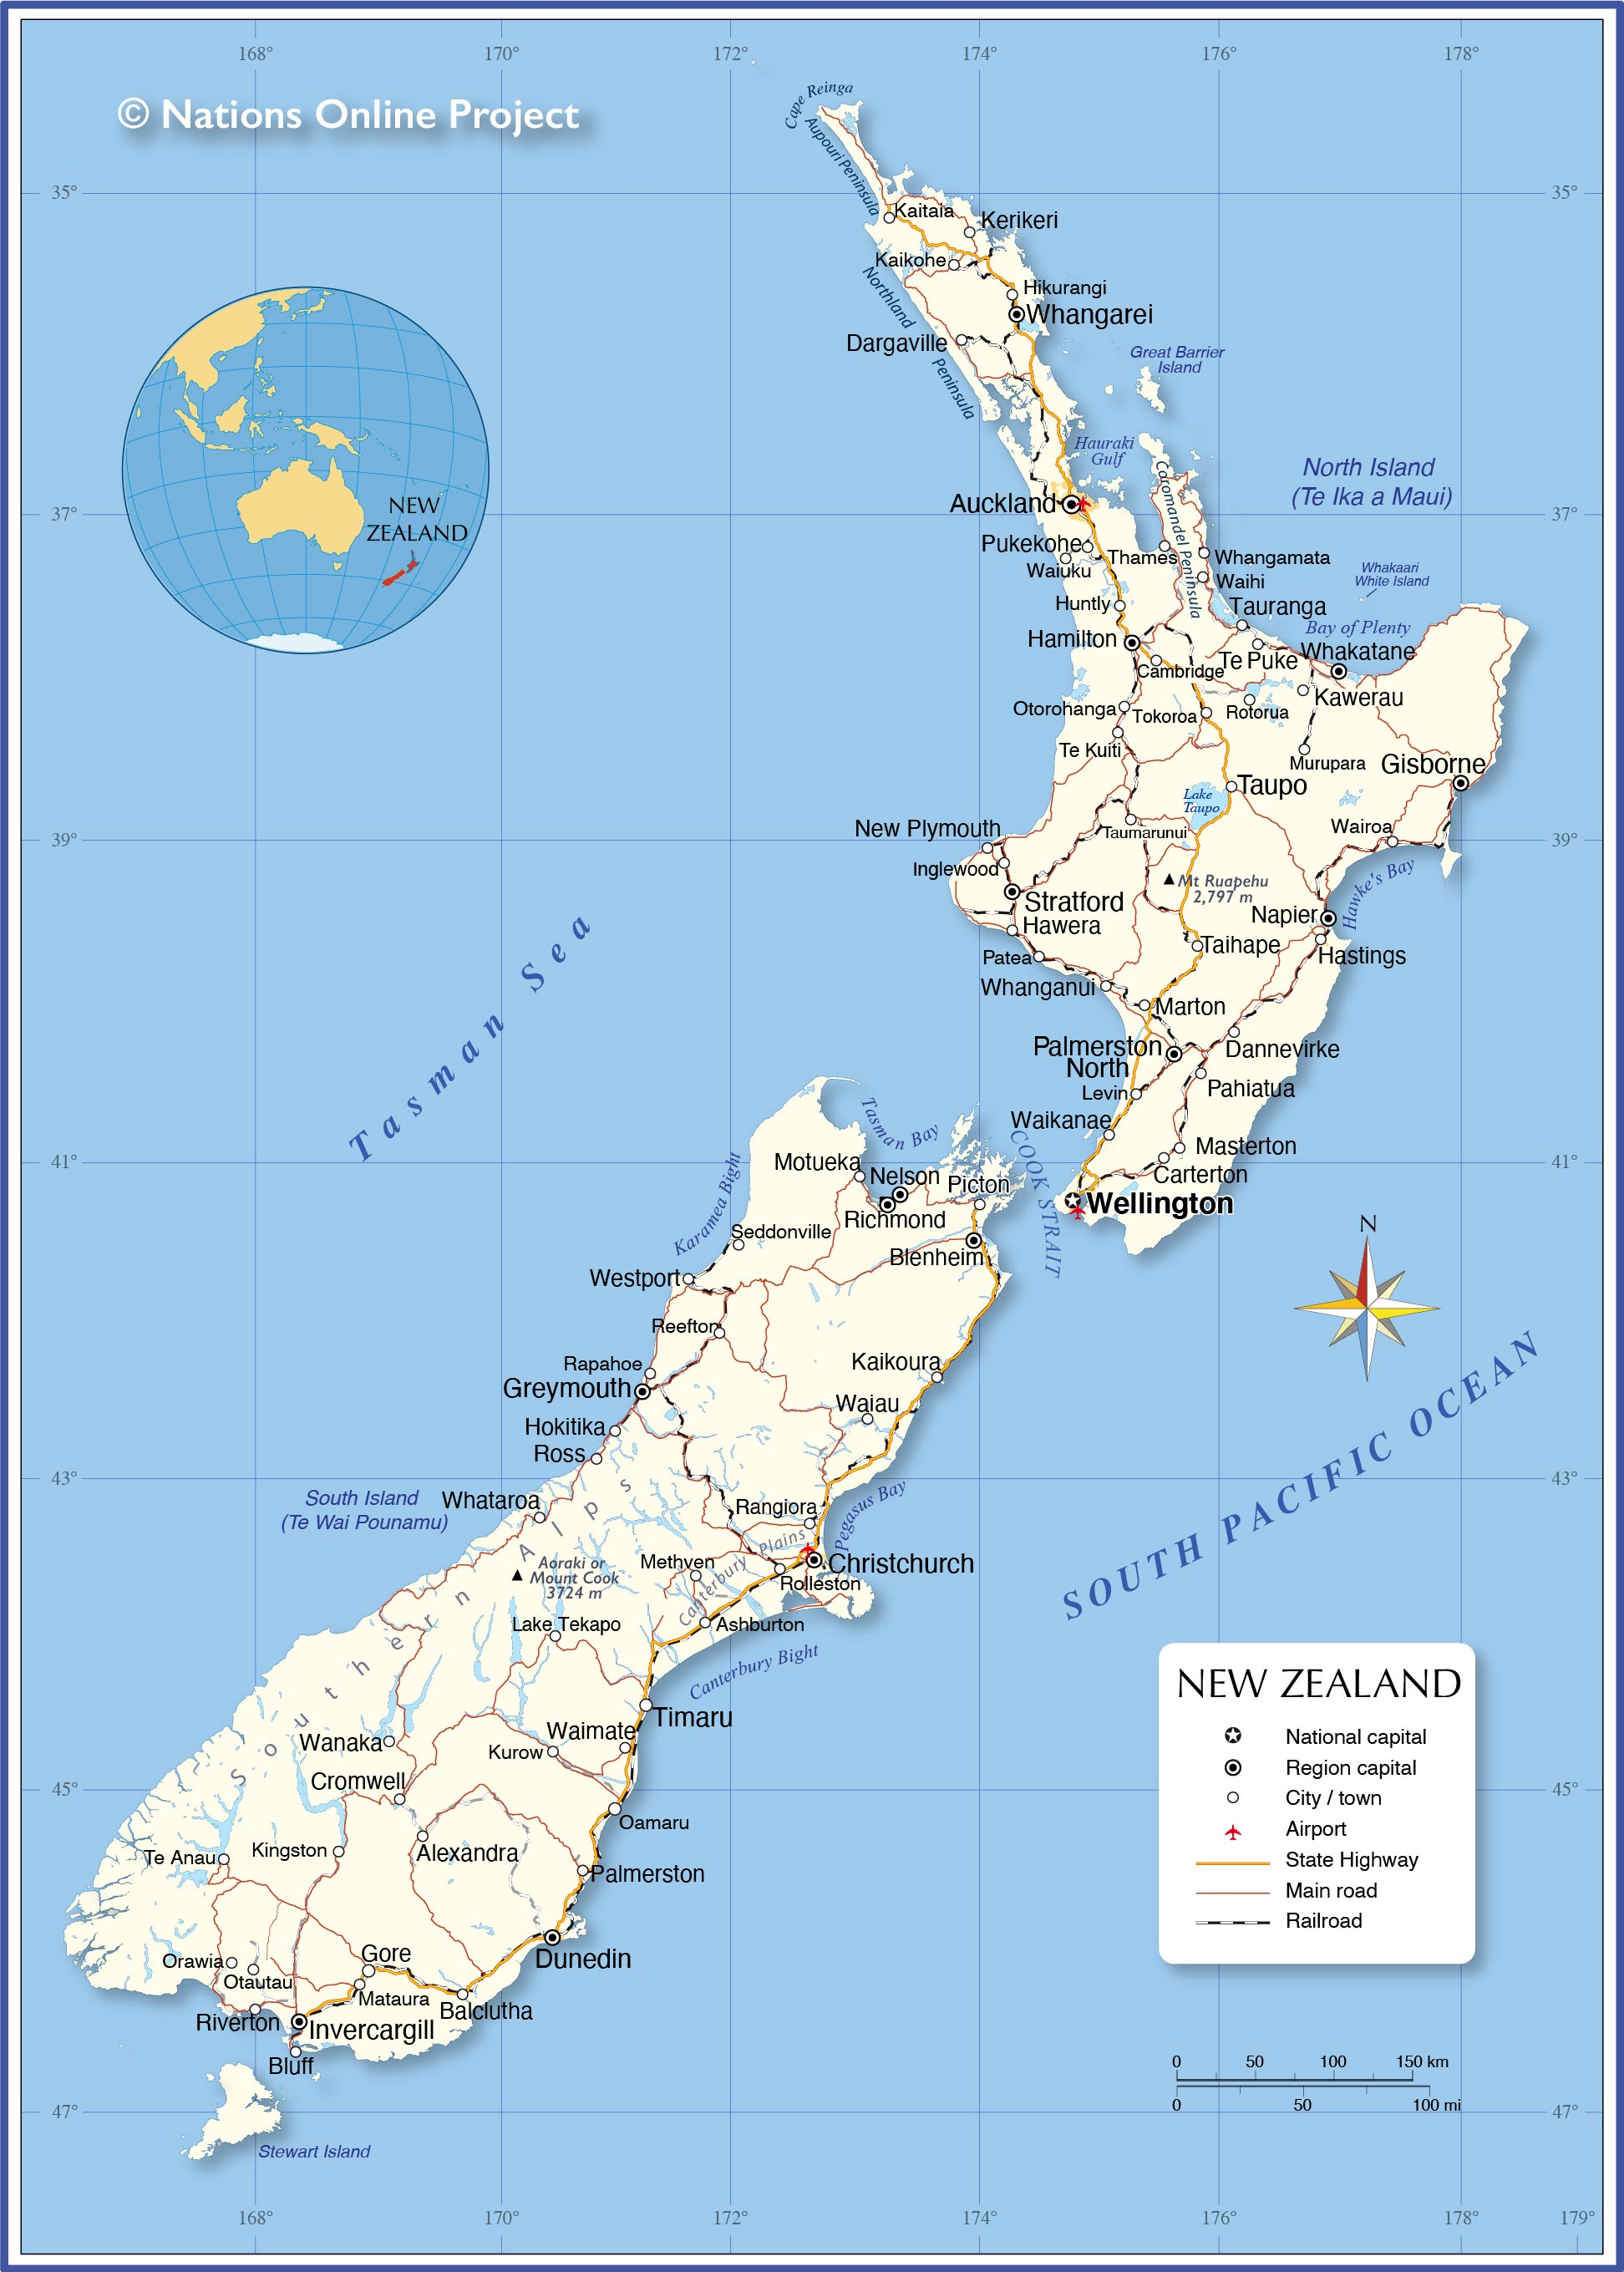 Political Map of New Zealand - Nations Online Project